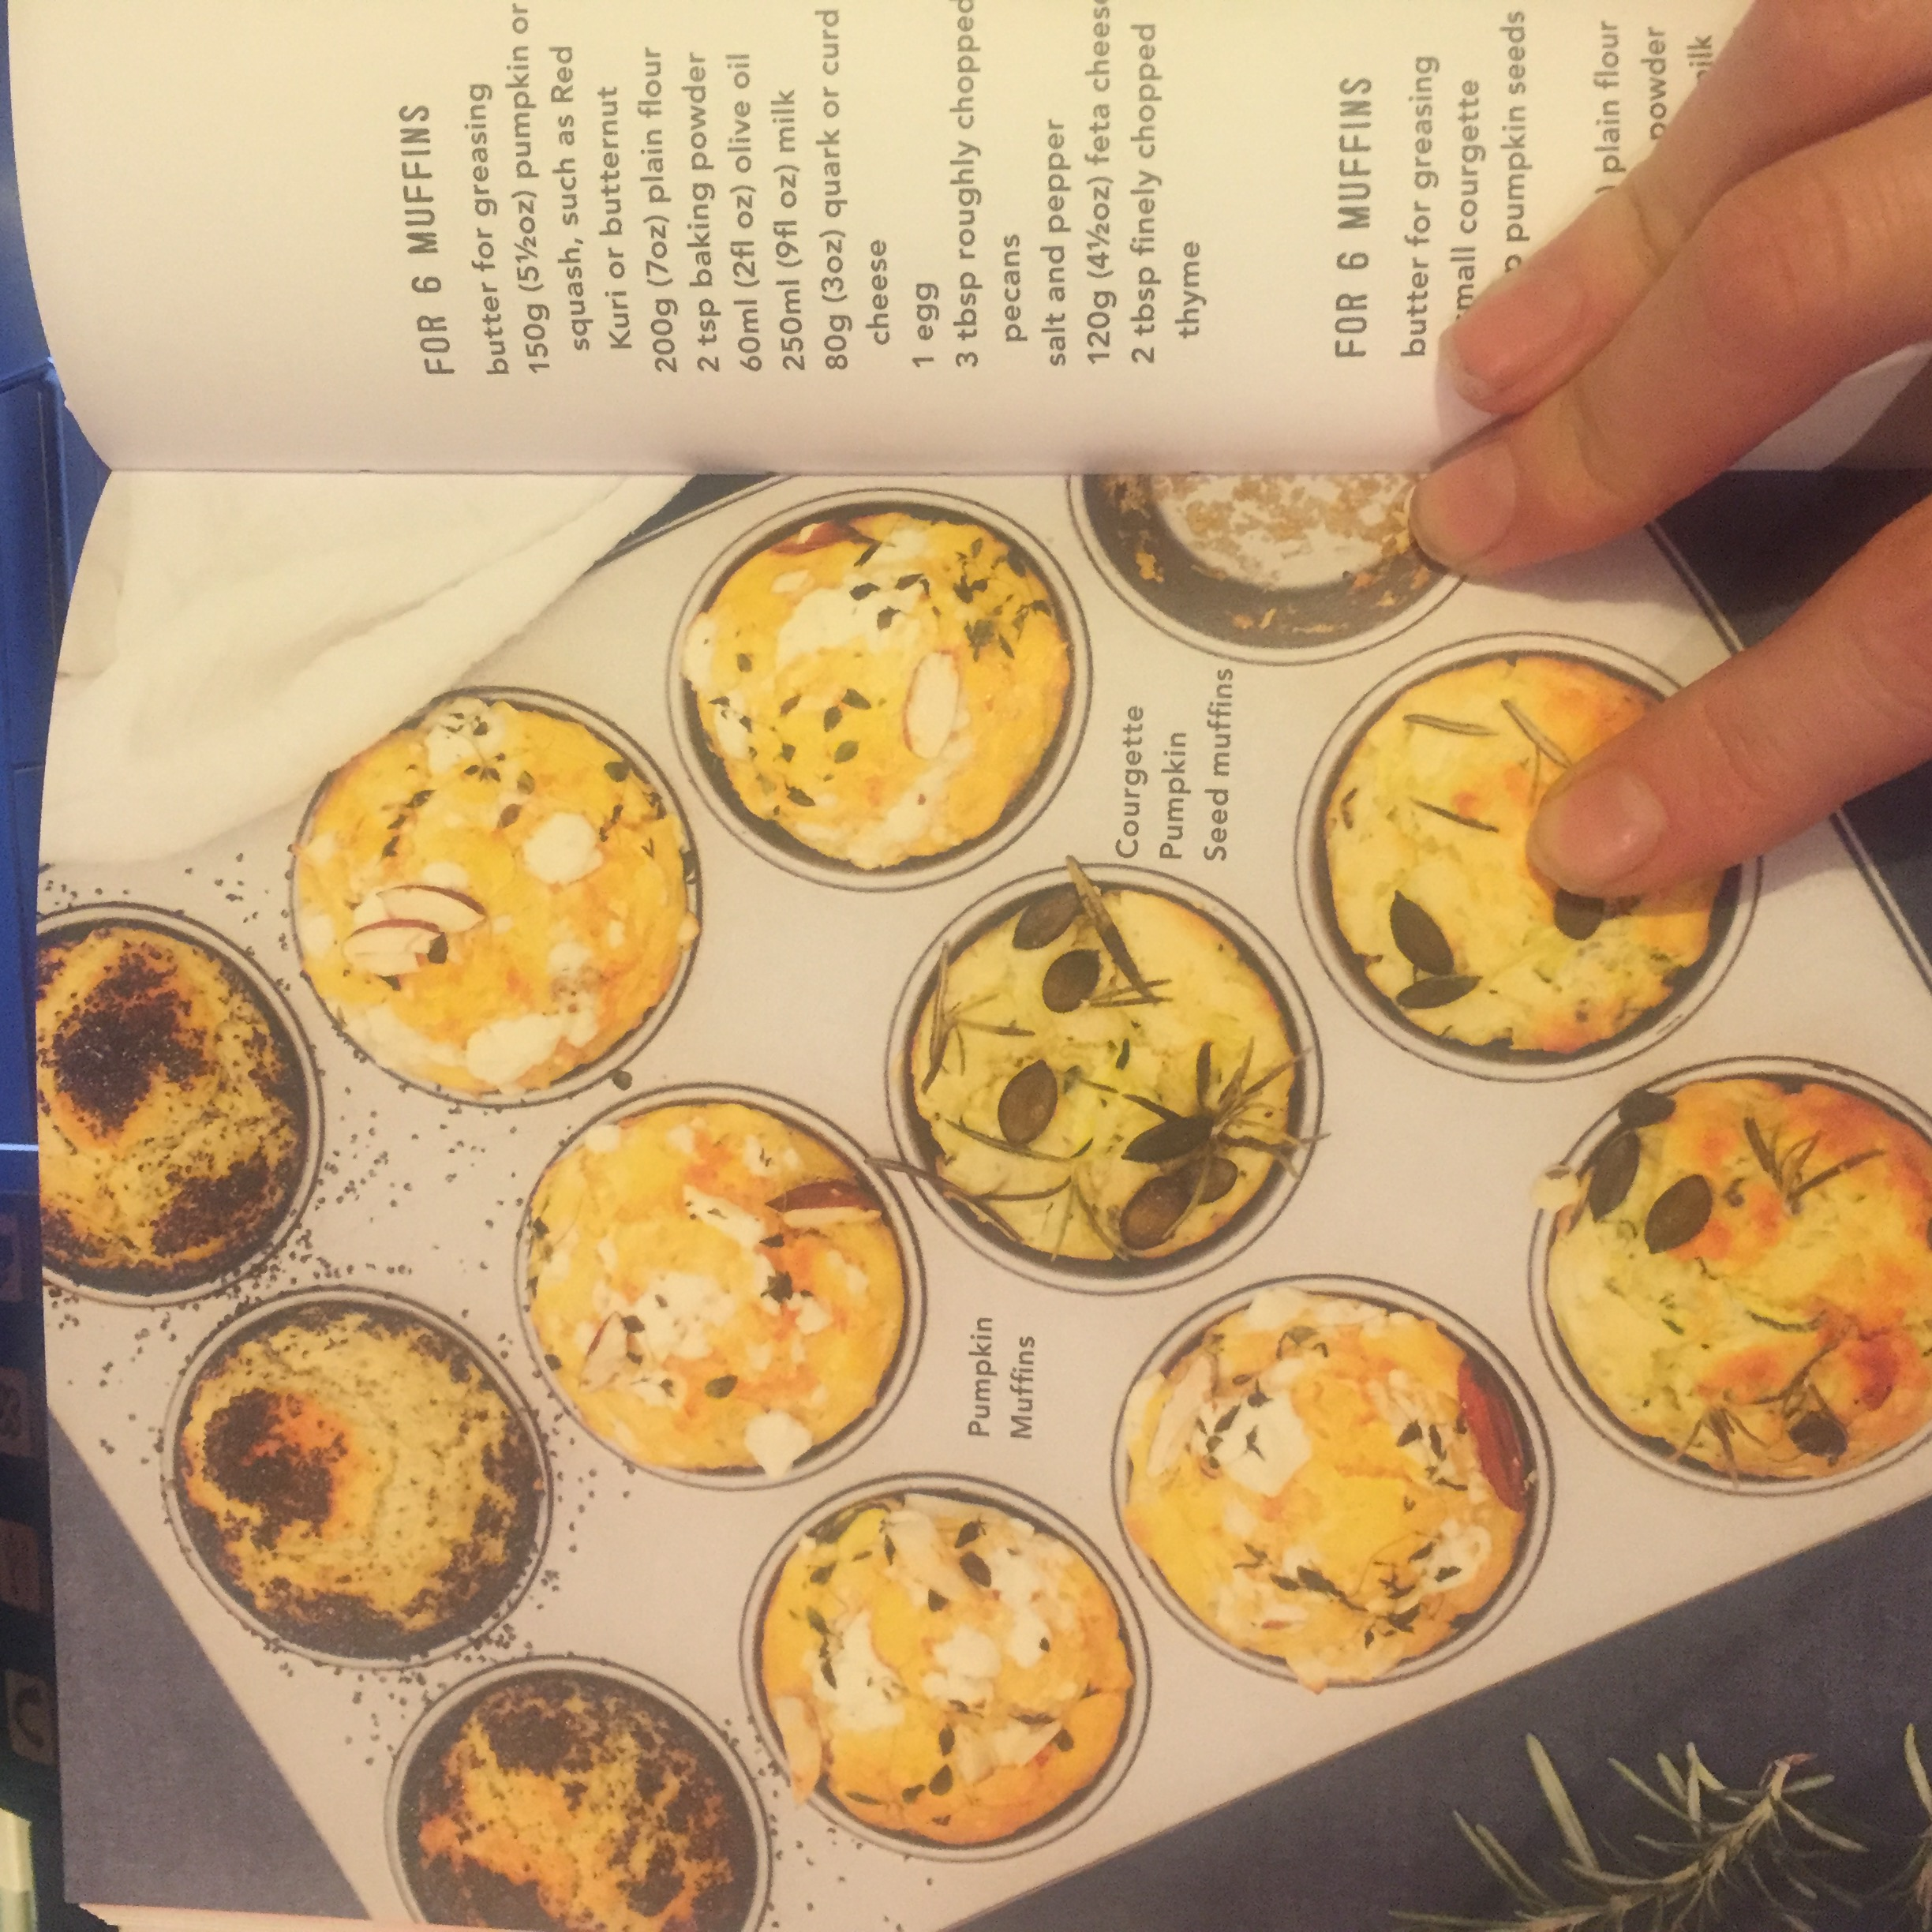 The Lunchbox Book Lunchbox World review